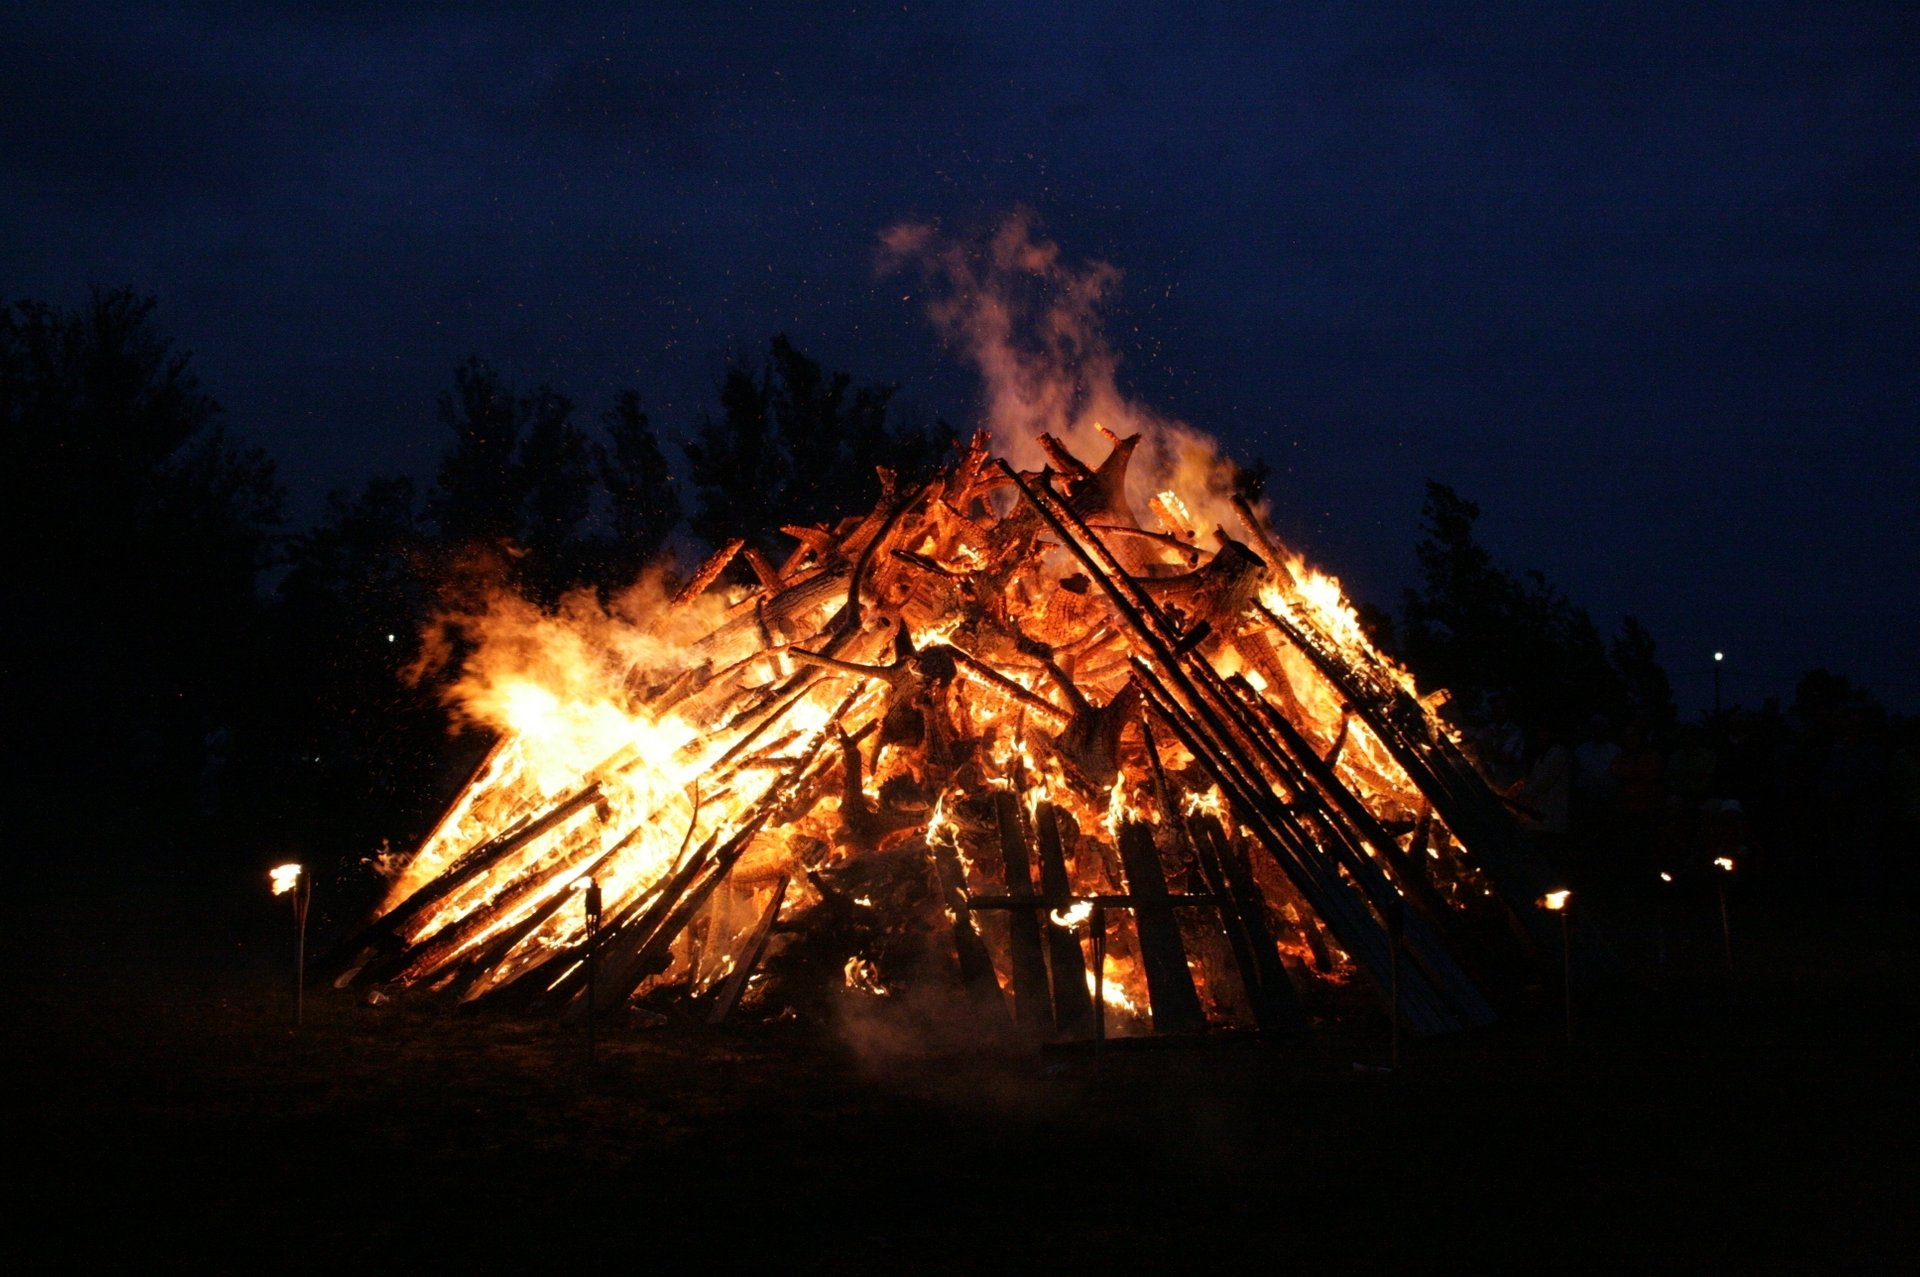 Jaanipäev or Midsummer in Estonia 2020 - Best Time